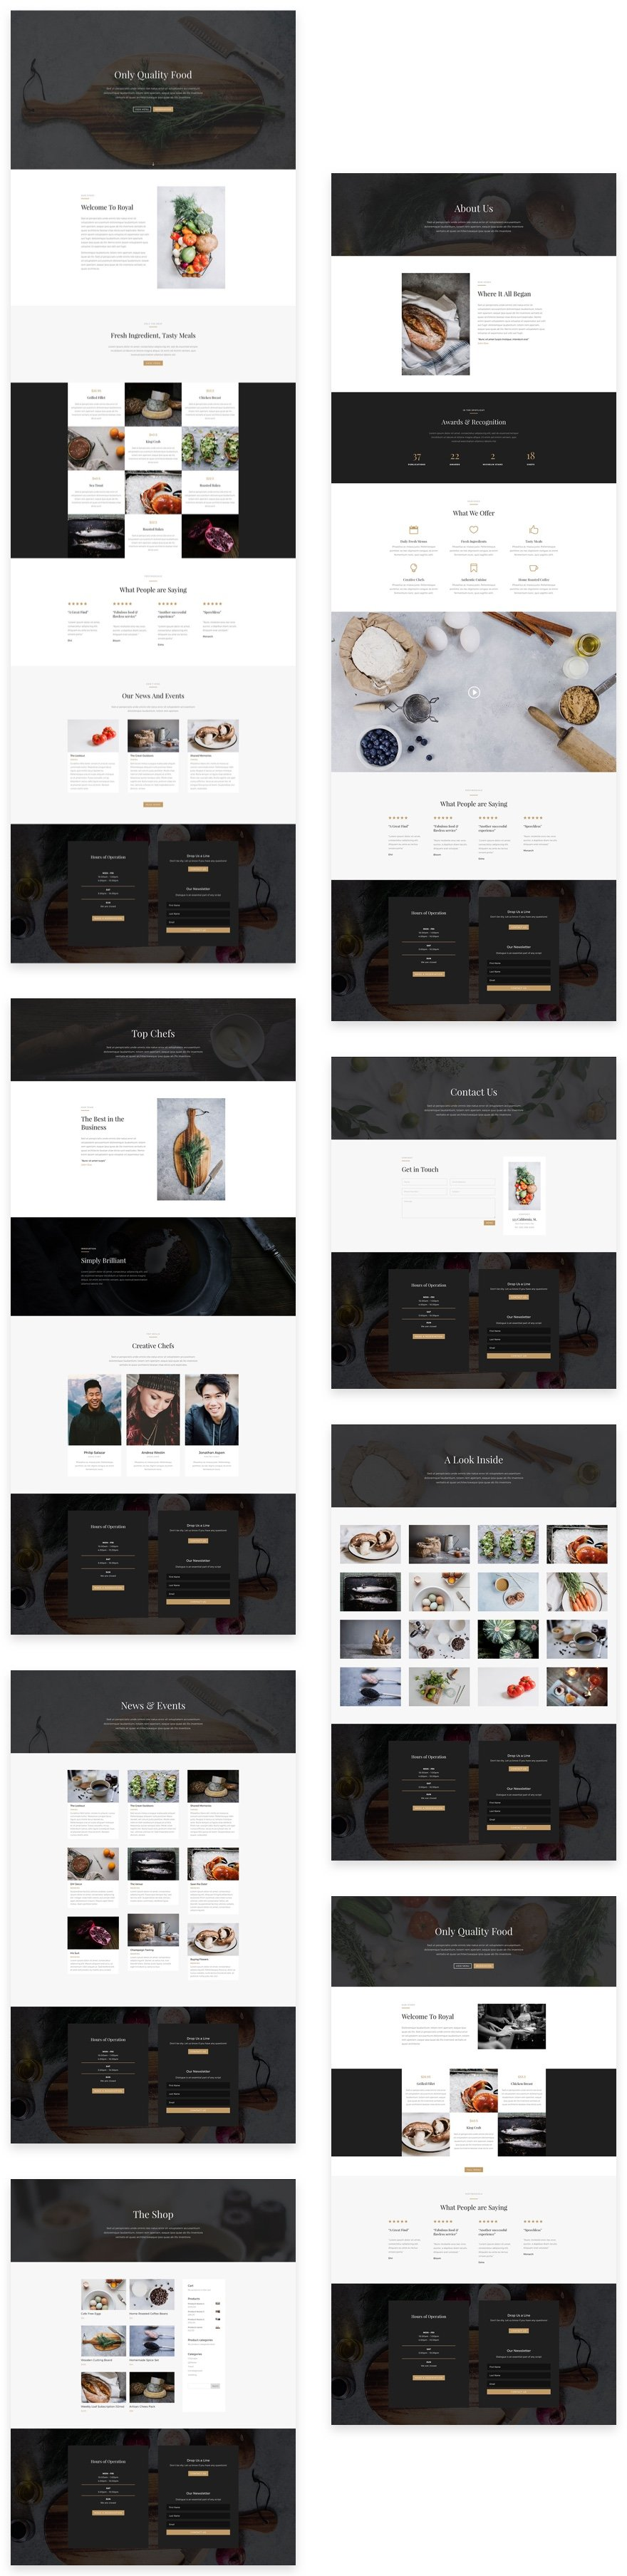 divi-restaurant-layout-pack-grid (1)